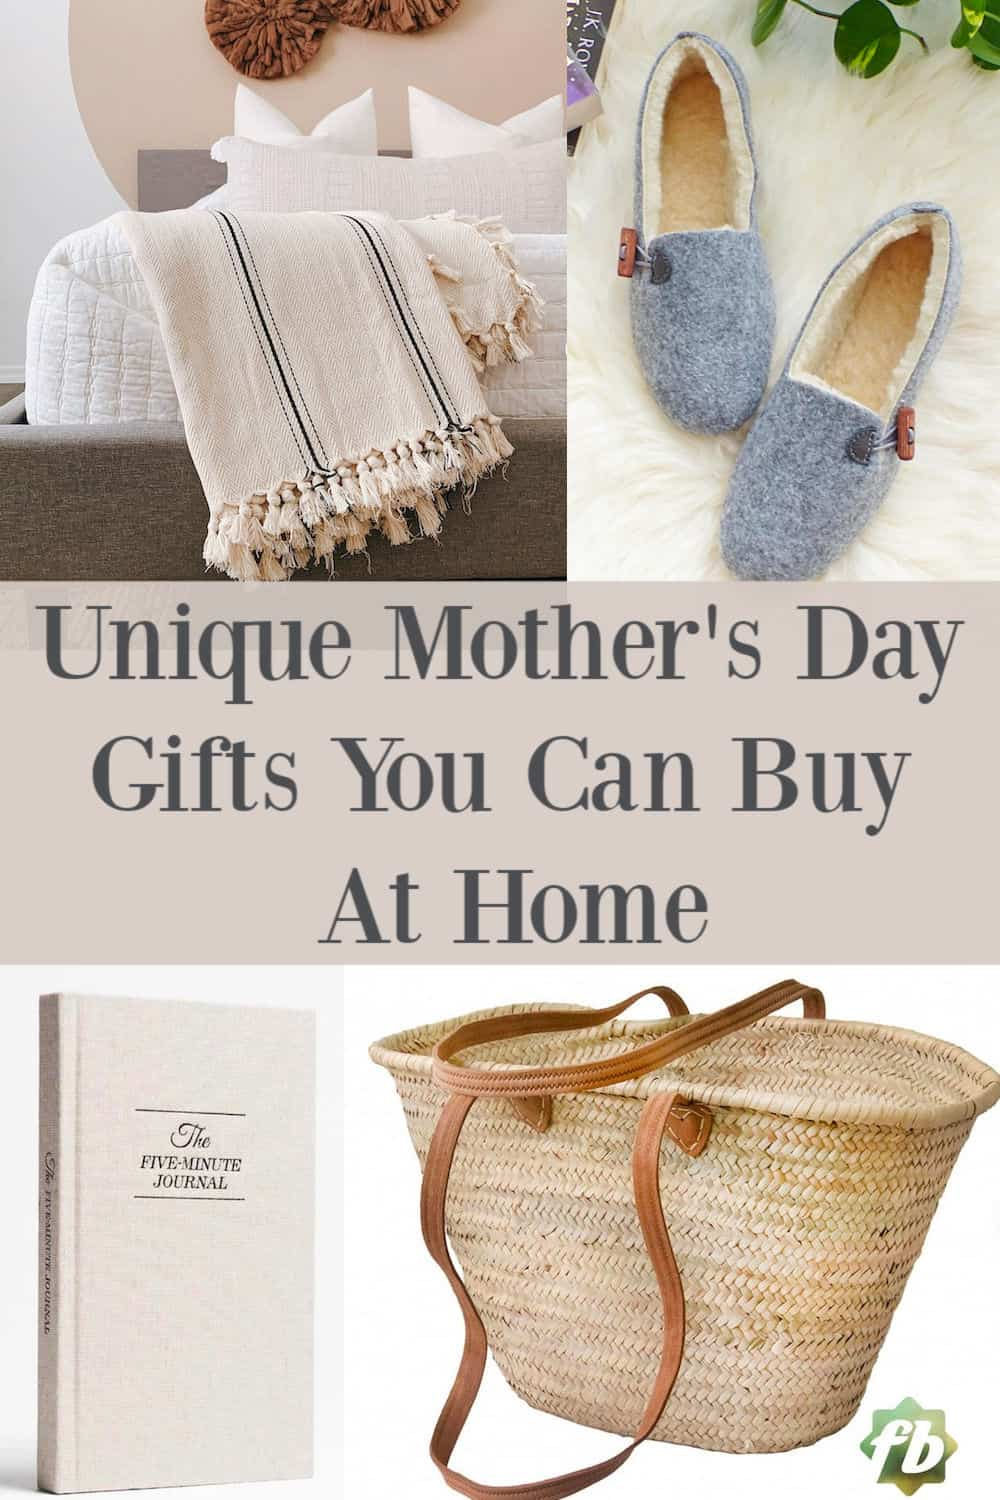 Unique Mother's Day Gifts you can buy in 2020 from home